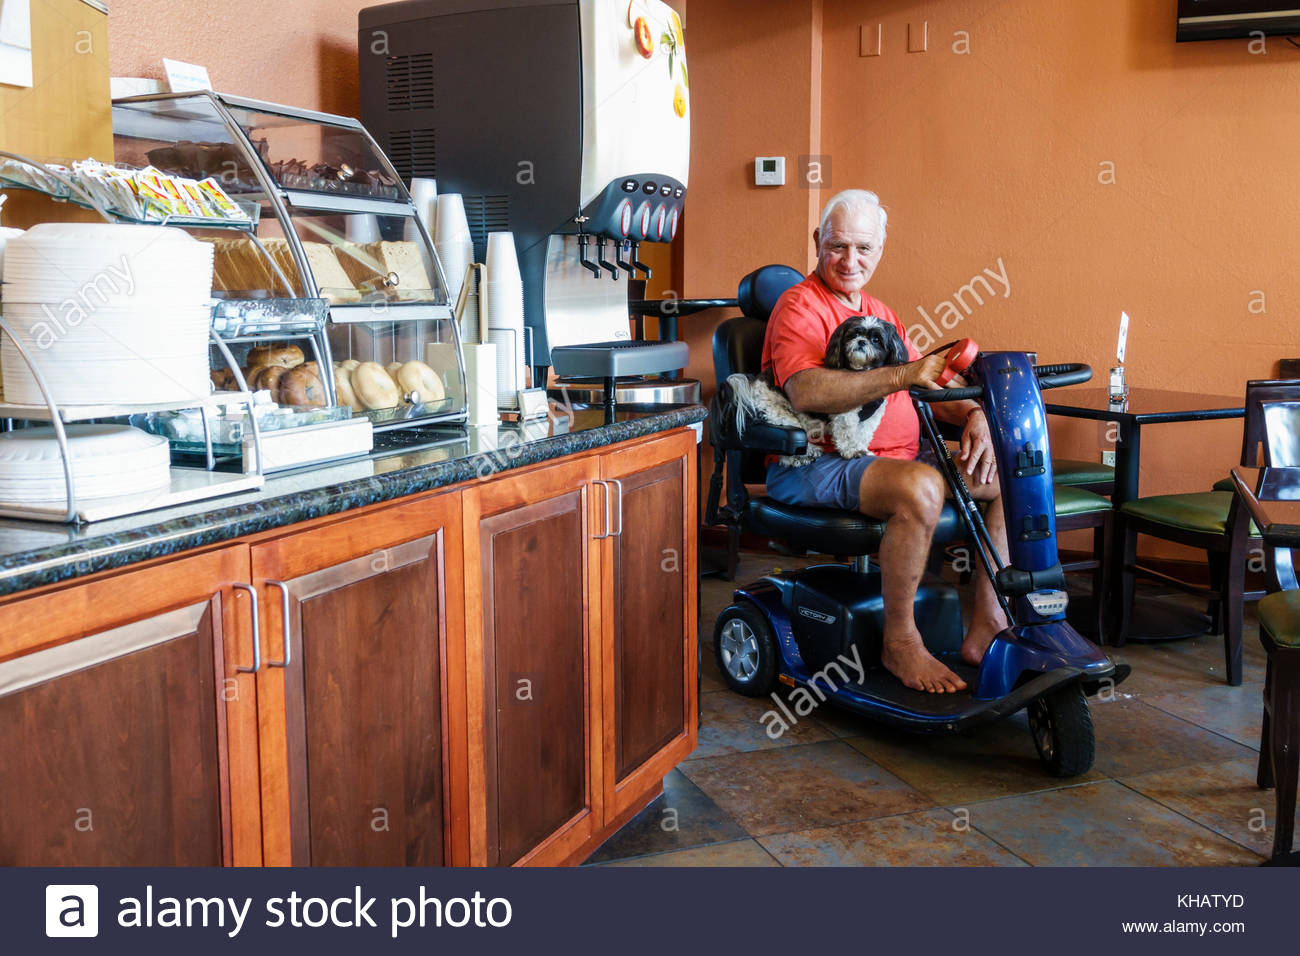 Florida Clearwater Holiday Inn Express hotel motel breakfast room senior man electric cart wheelchair disabled dog - Stock Image